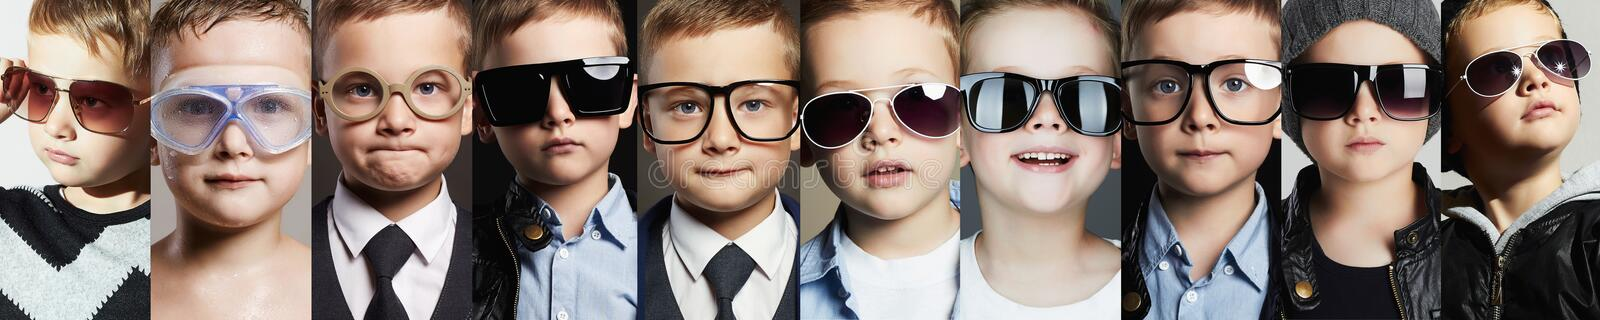 Children in glasses and sunglasses collage royalty free stock image